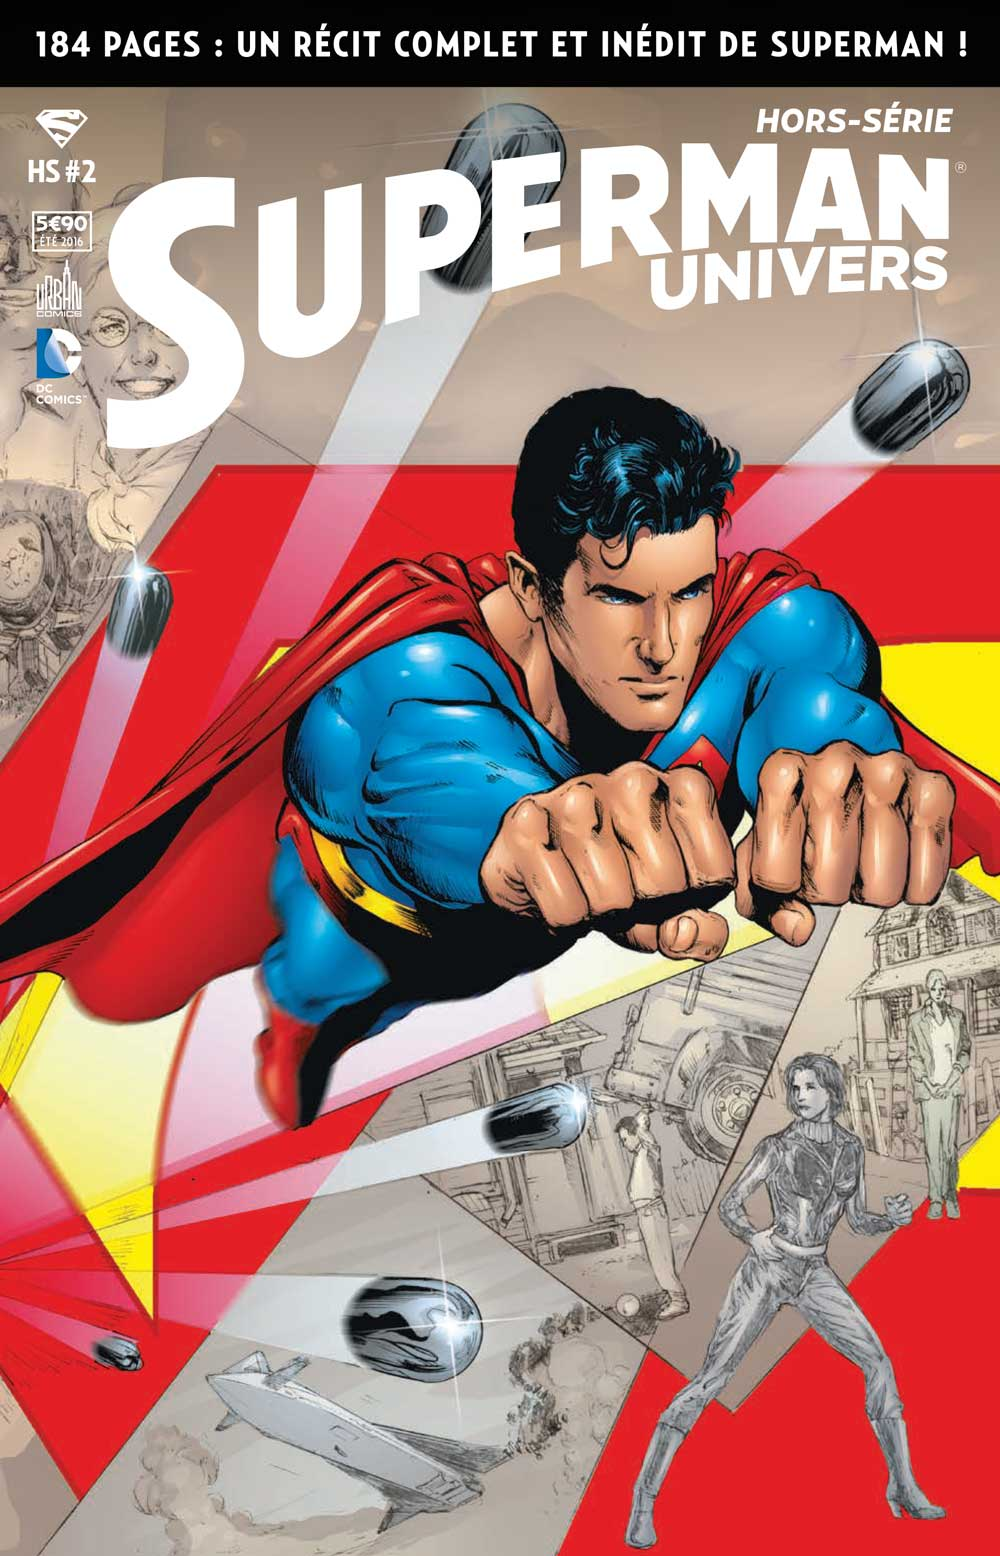 superman-univers-hors-serie-comics-volume-2-kiosque-2016-en-cours-251669